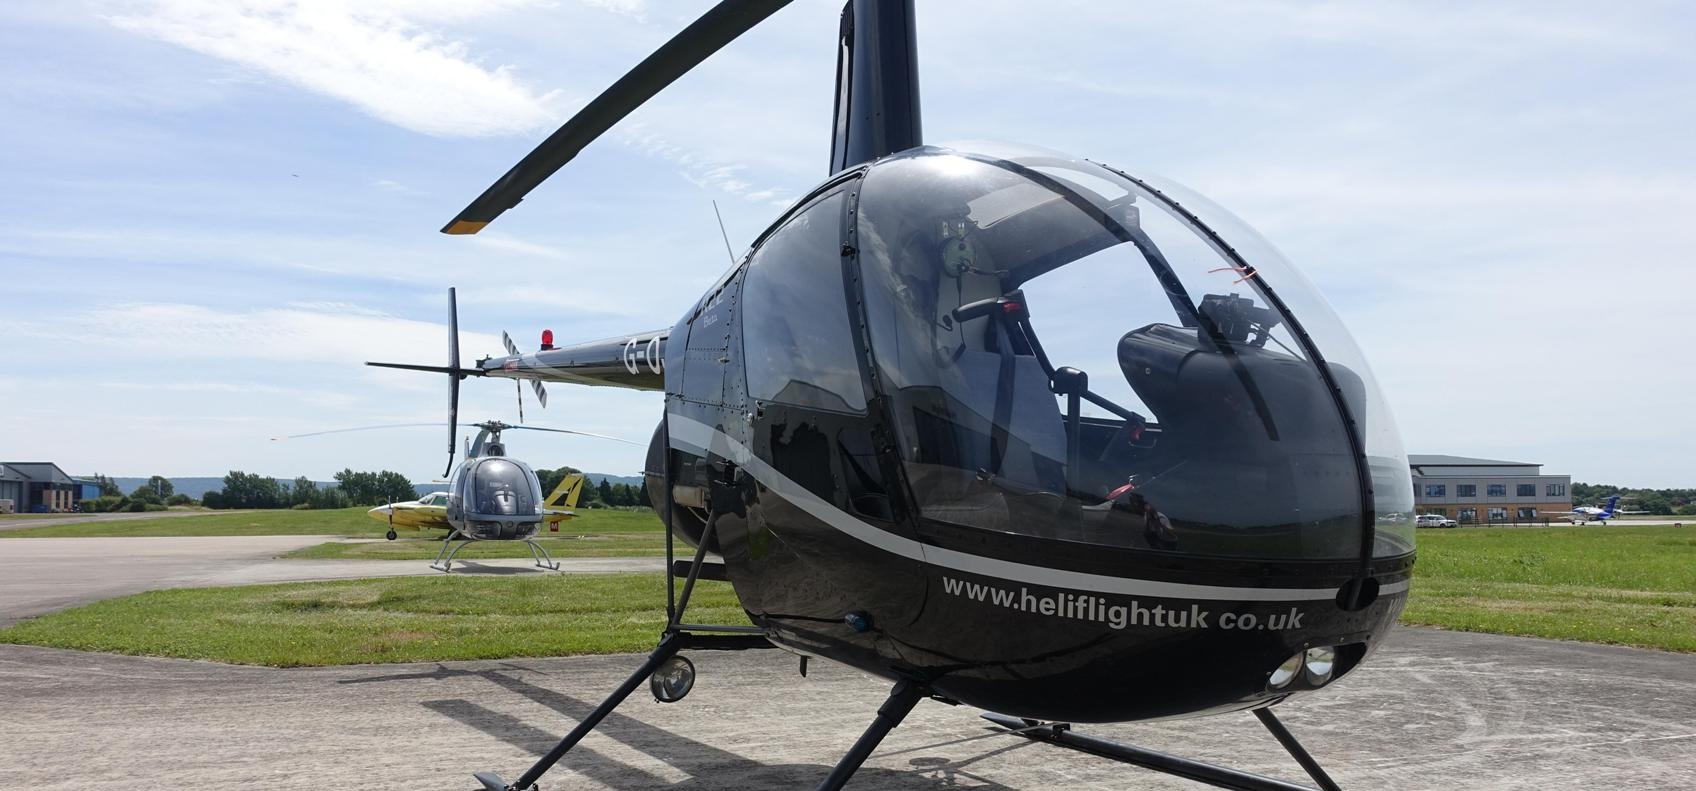 R22 Helicopter Trial Flight Lesson in Gloucestershire (30 Mins)-1